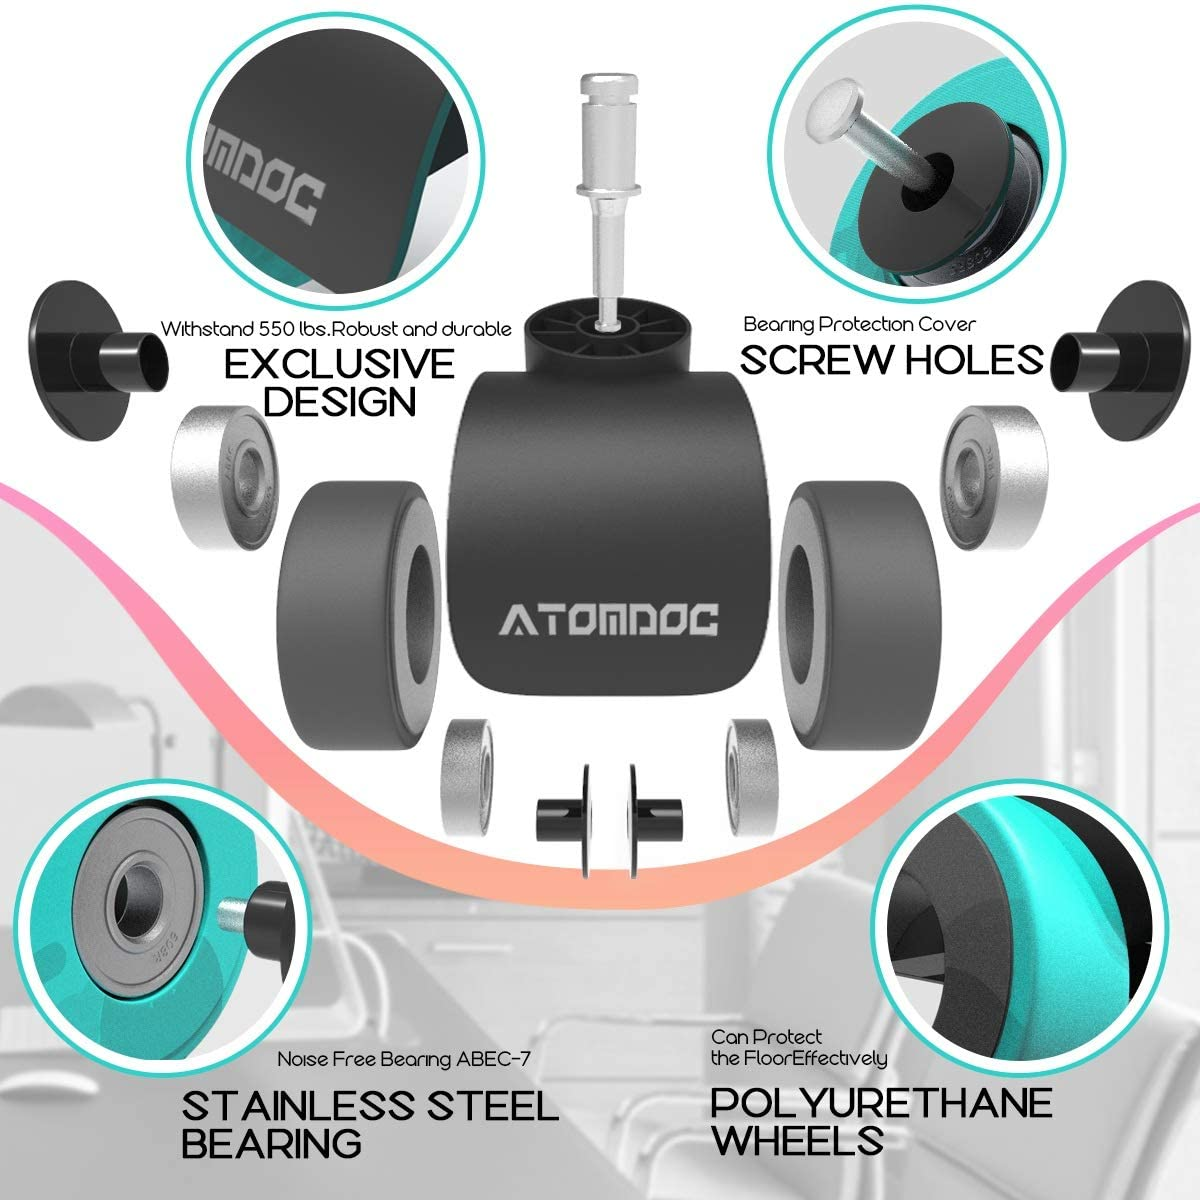 ATOMDOC Office Chair Caster Wheels, Newly Revolutionary Quadruple Ball Bearing Design,Heavy Duty & Safe Protection for All Floors Including Hardwood, Set of 5: Furniture & Decor